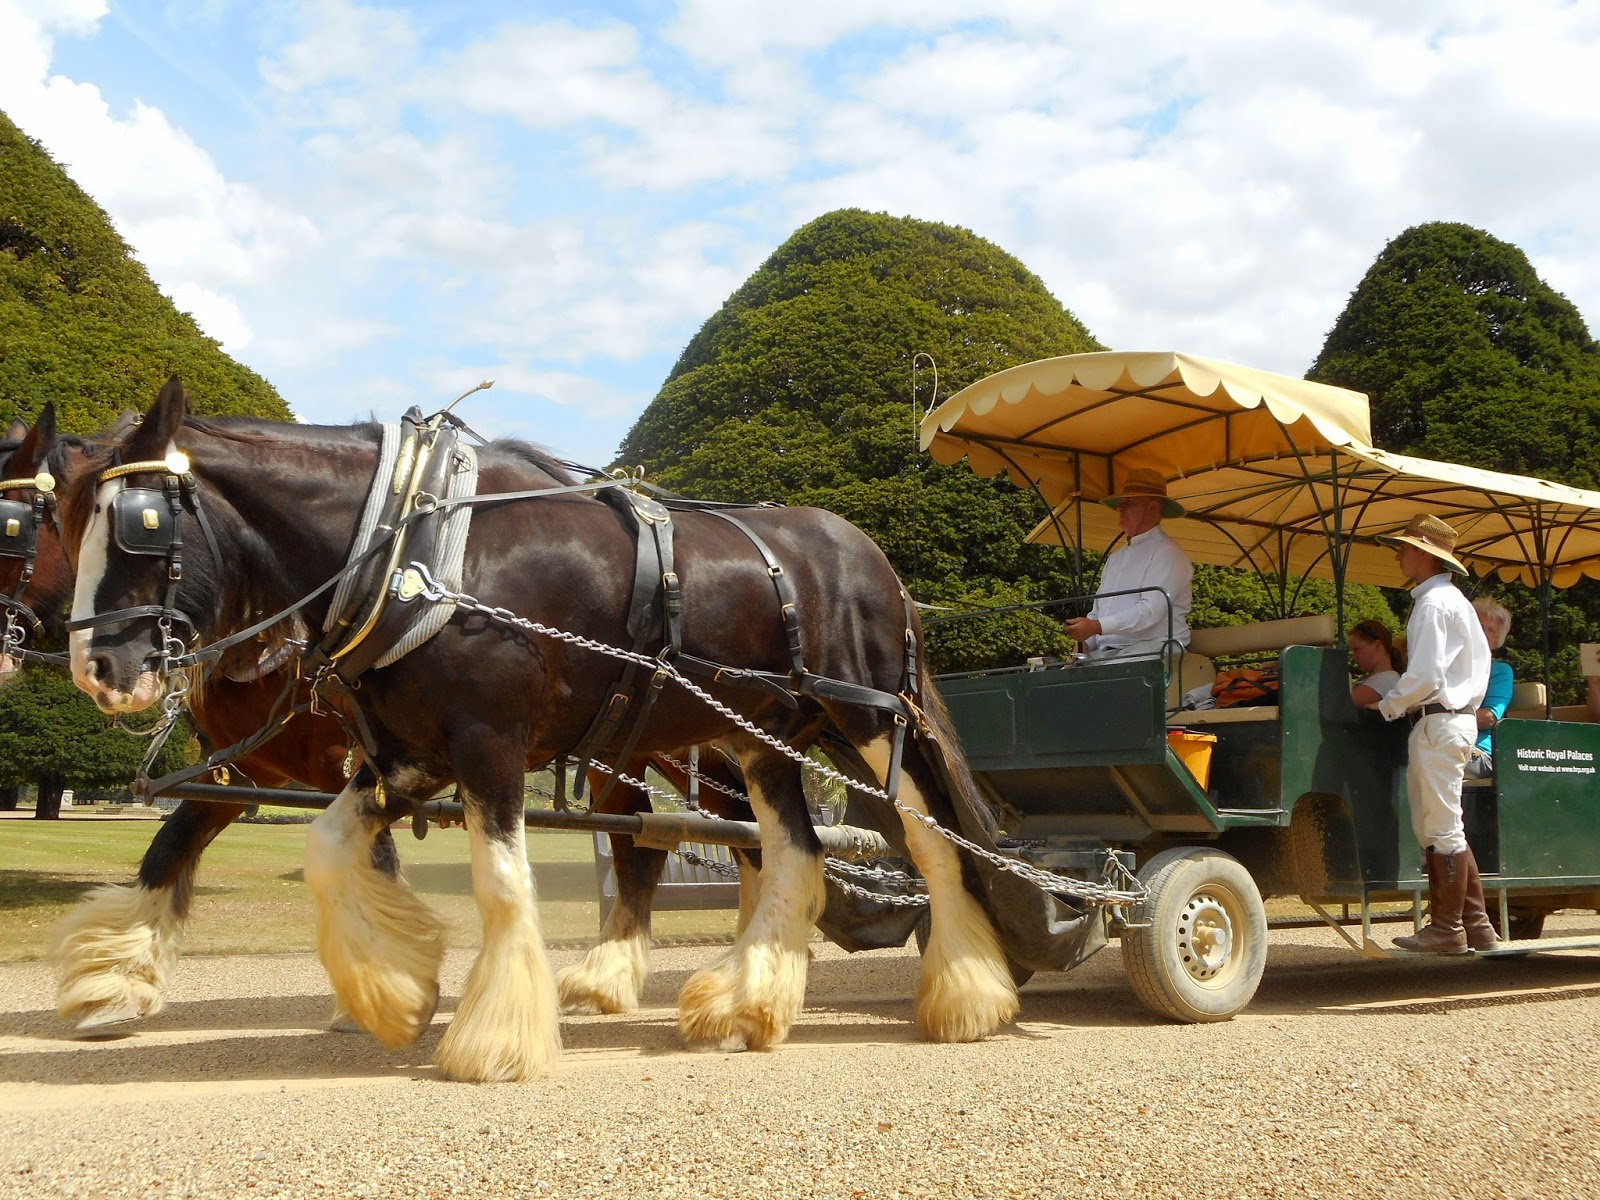 London buses one bus at a time: the return: Hampton Court Palace Gardens